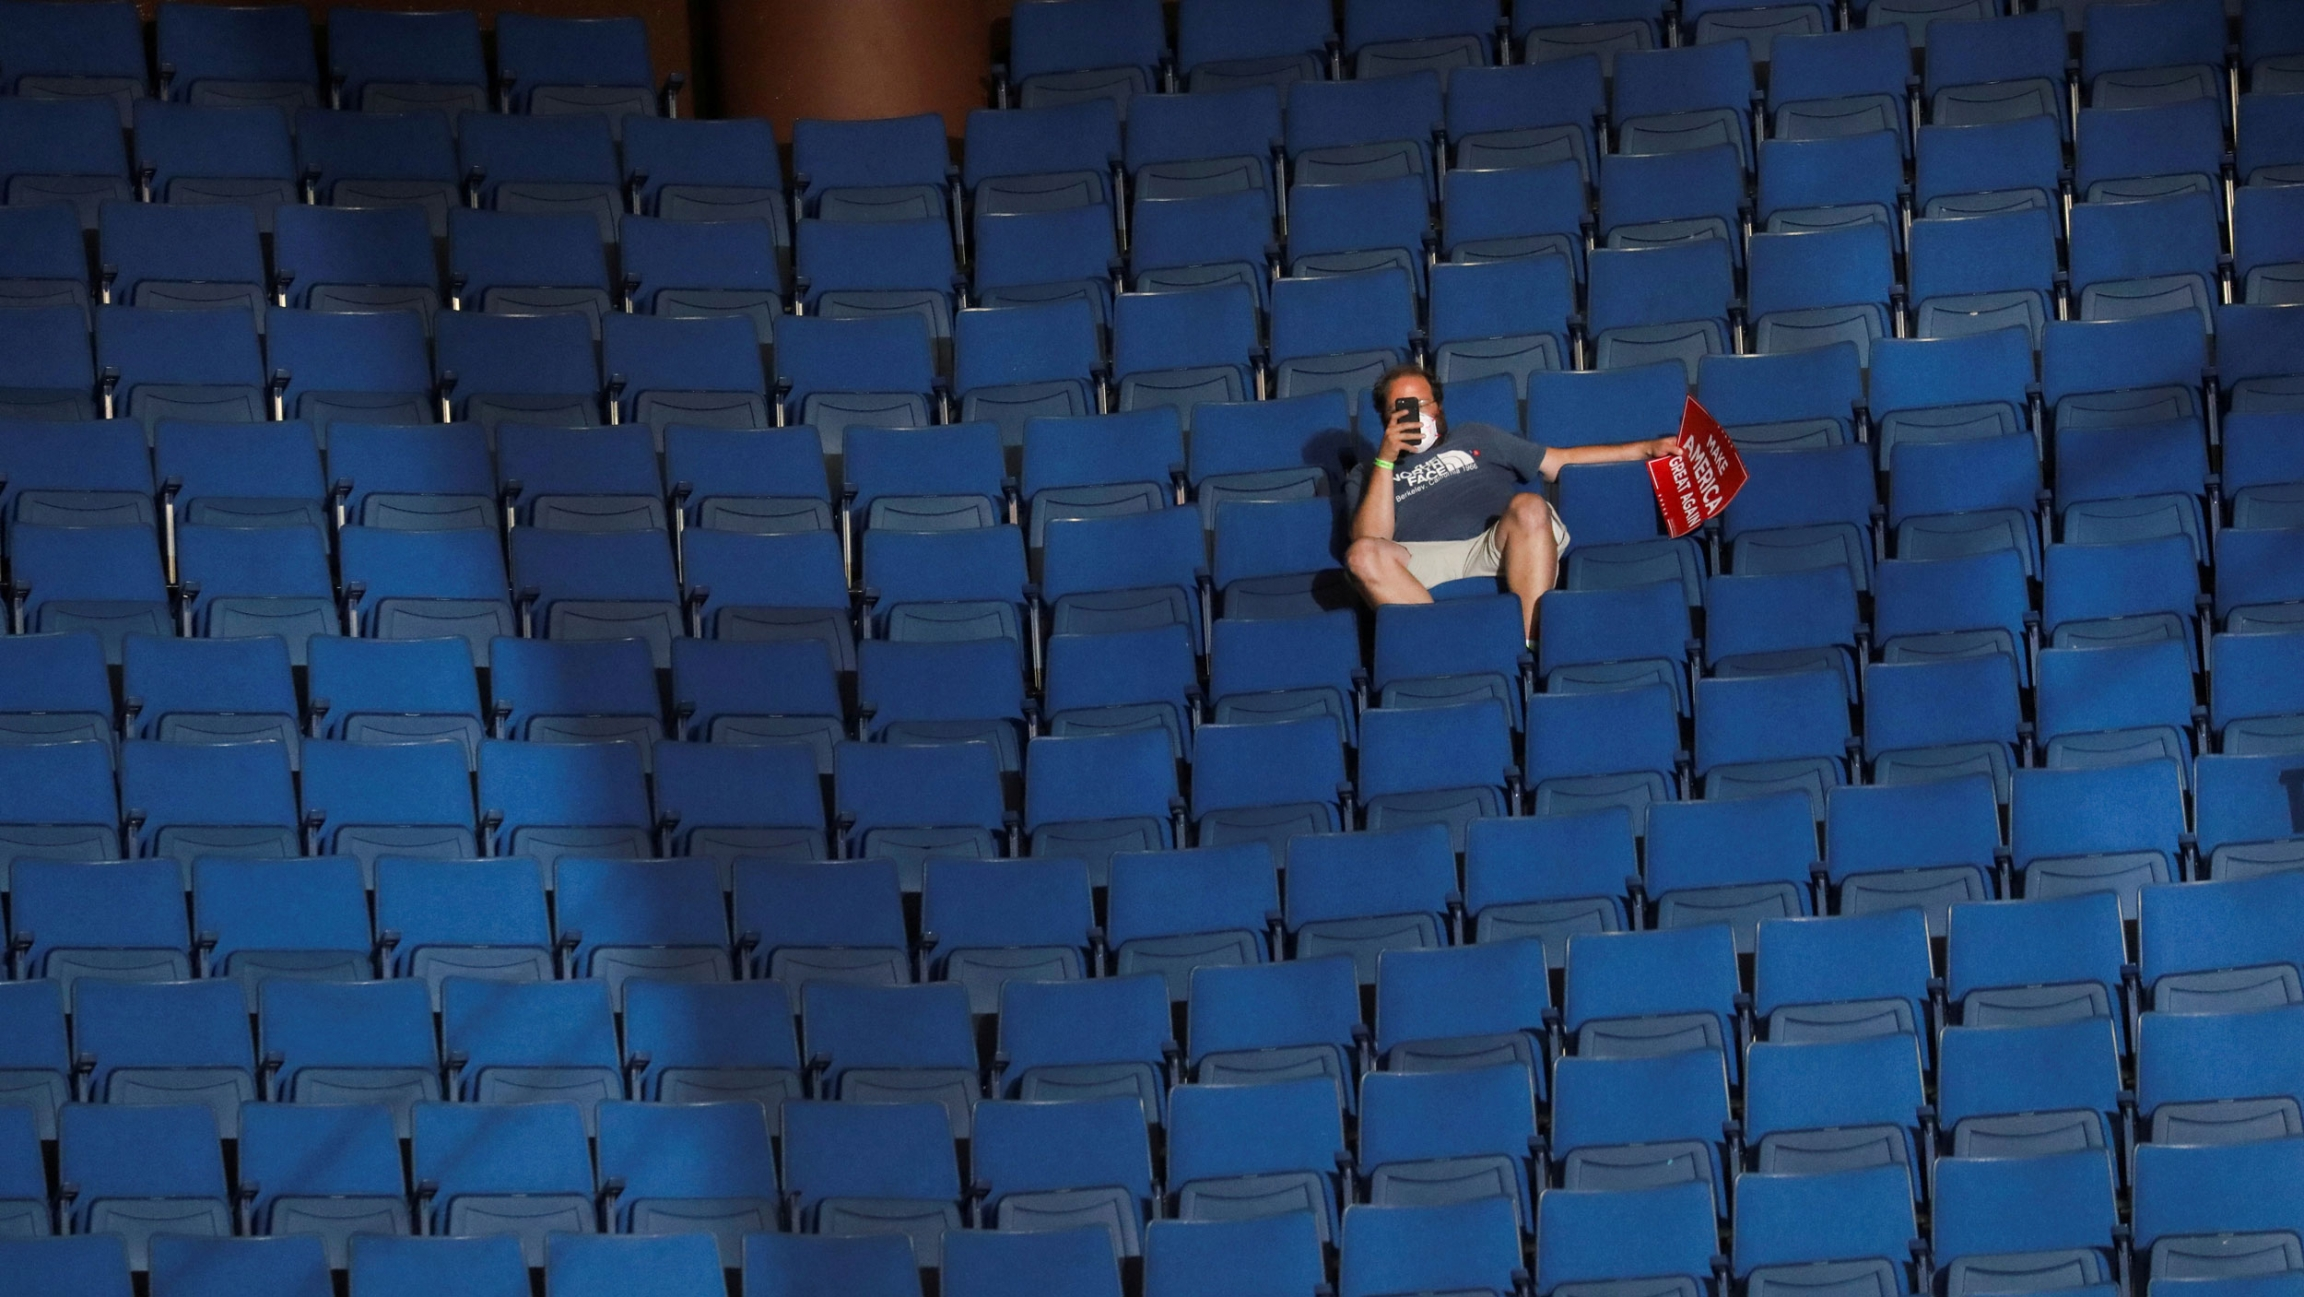 A man is shown sitting in a chairi in an arena hollding his phone up with empty rows of chairs all around him.